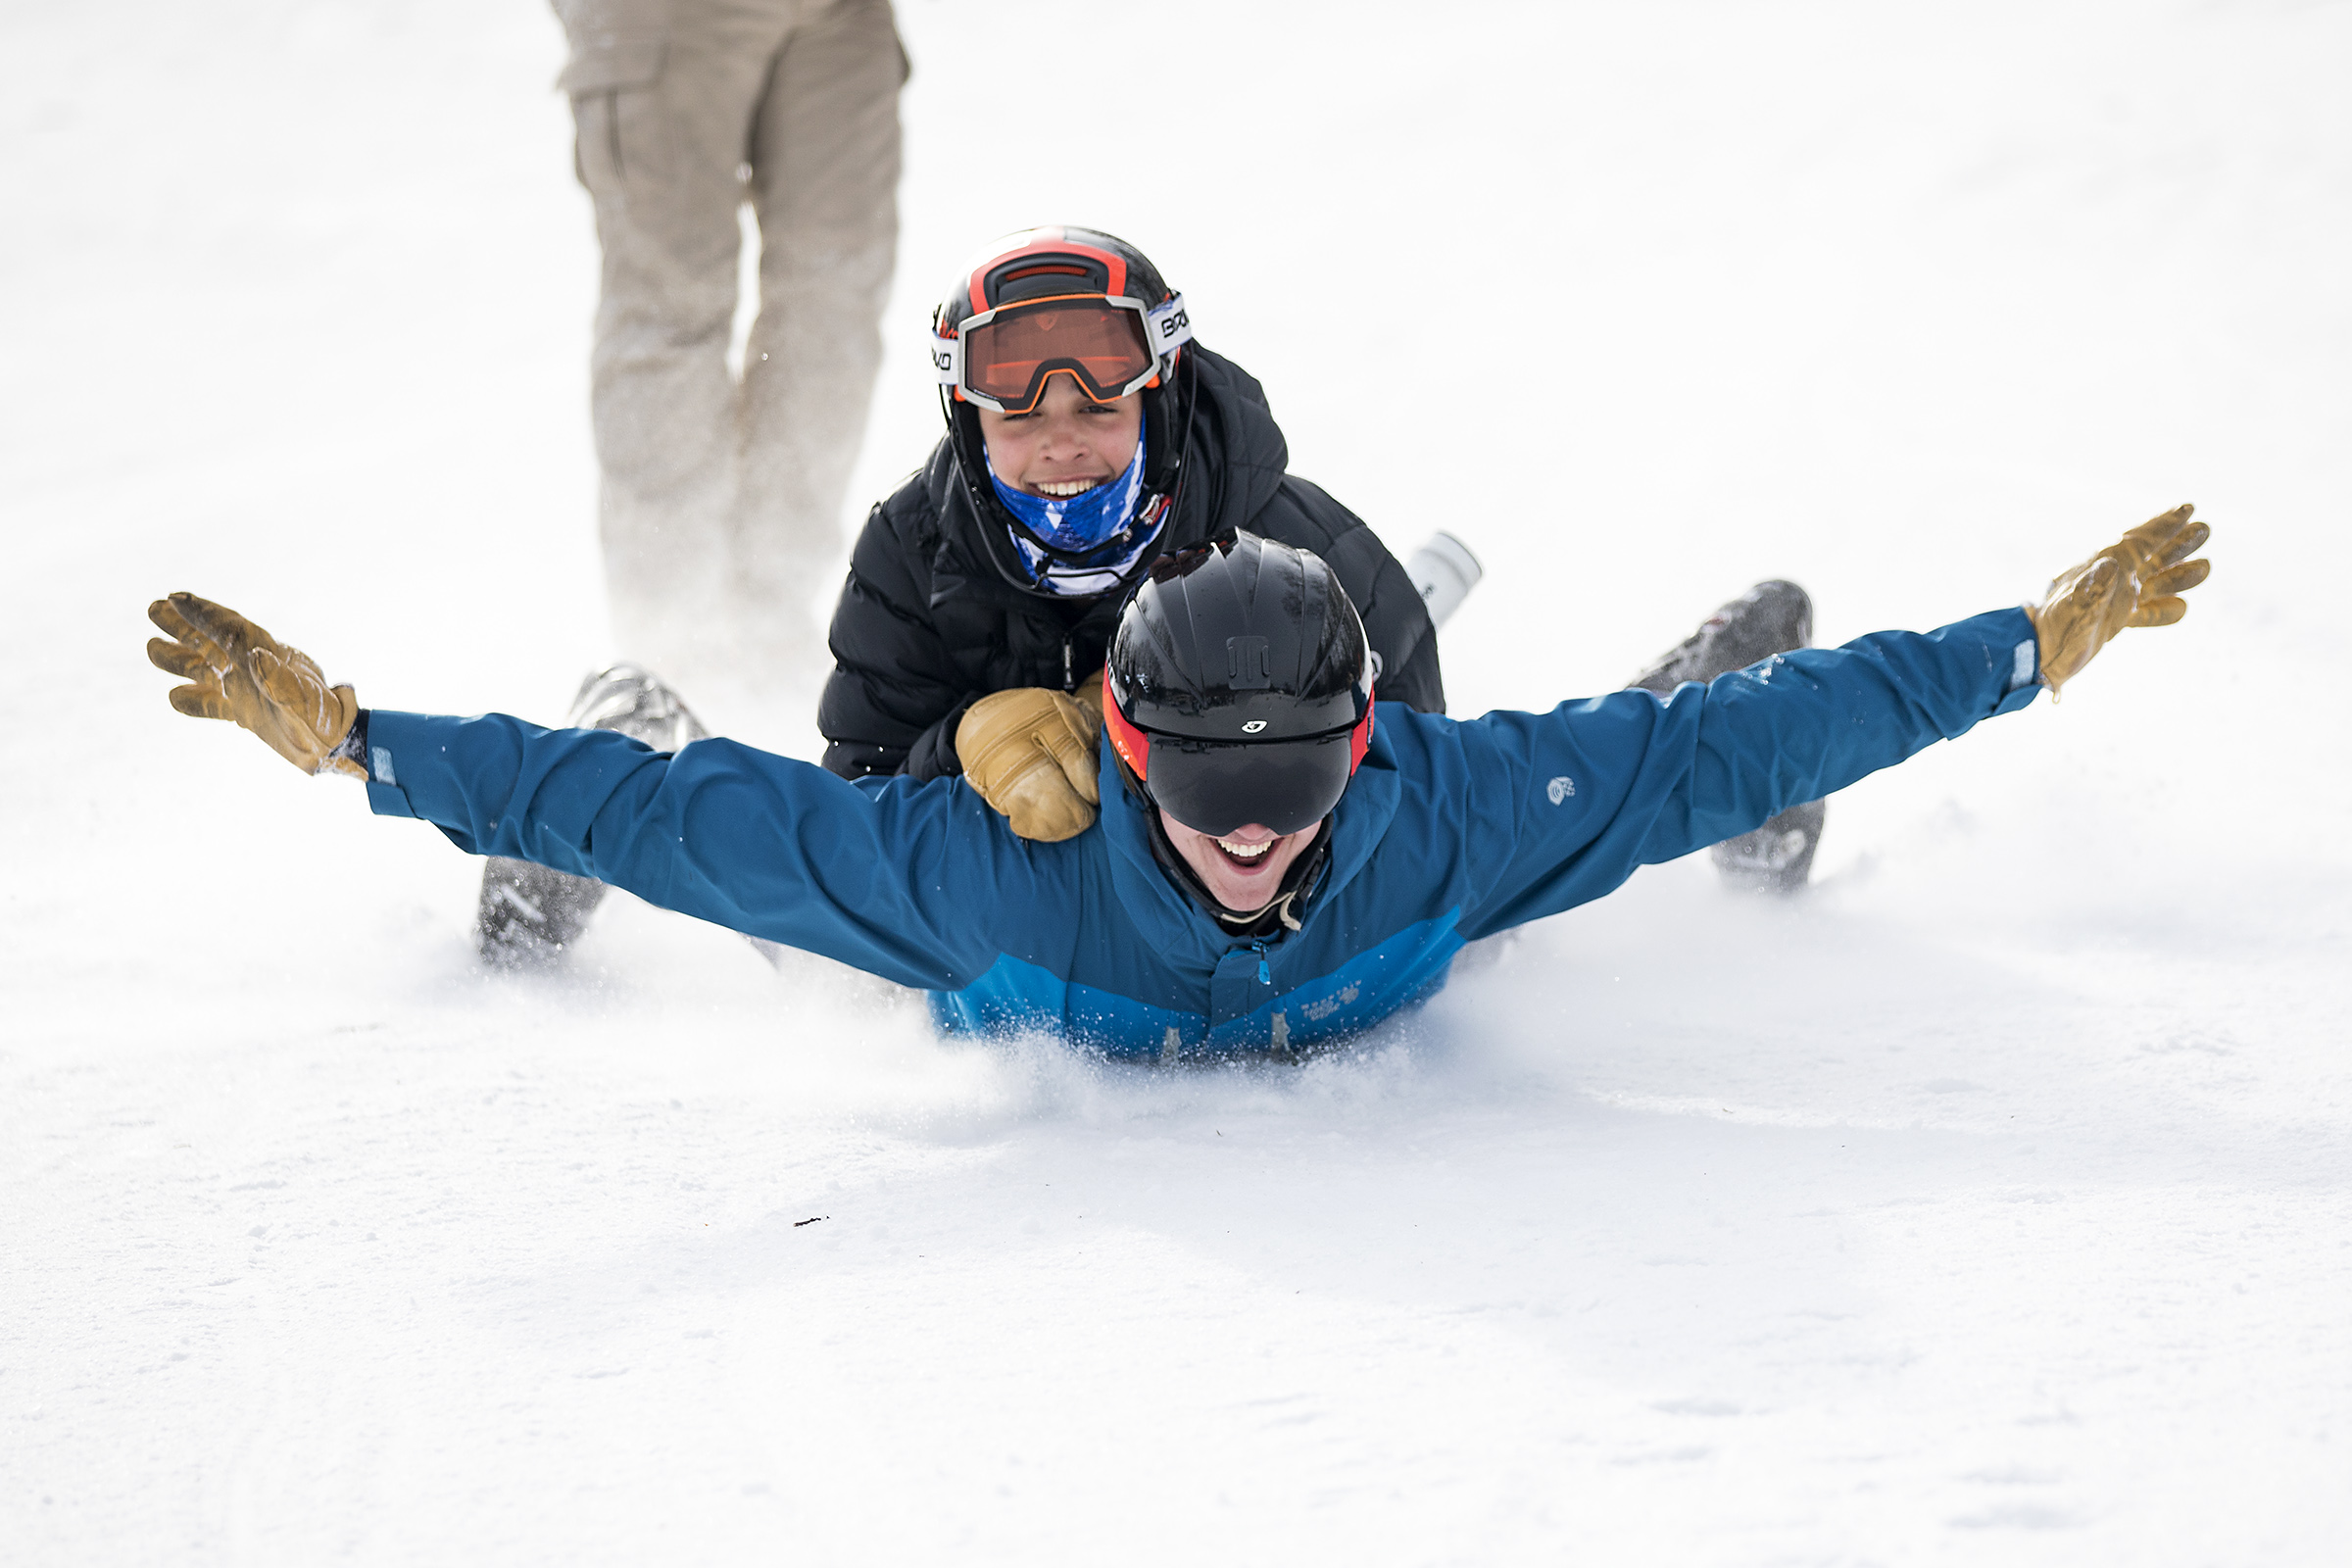 Natick senior Jay Sant uses a lunch tray to sled with freshman Josh Libby on his back during the Alpine State Championship at Wachusett Mountain Ski Area on Feb. 27, 2019.